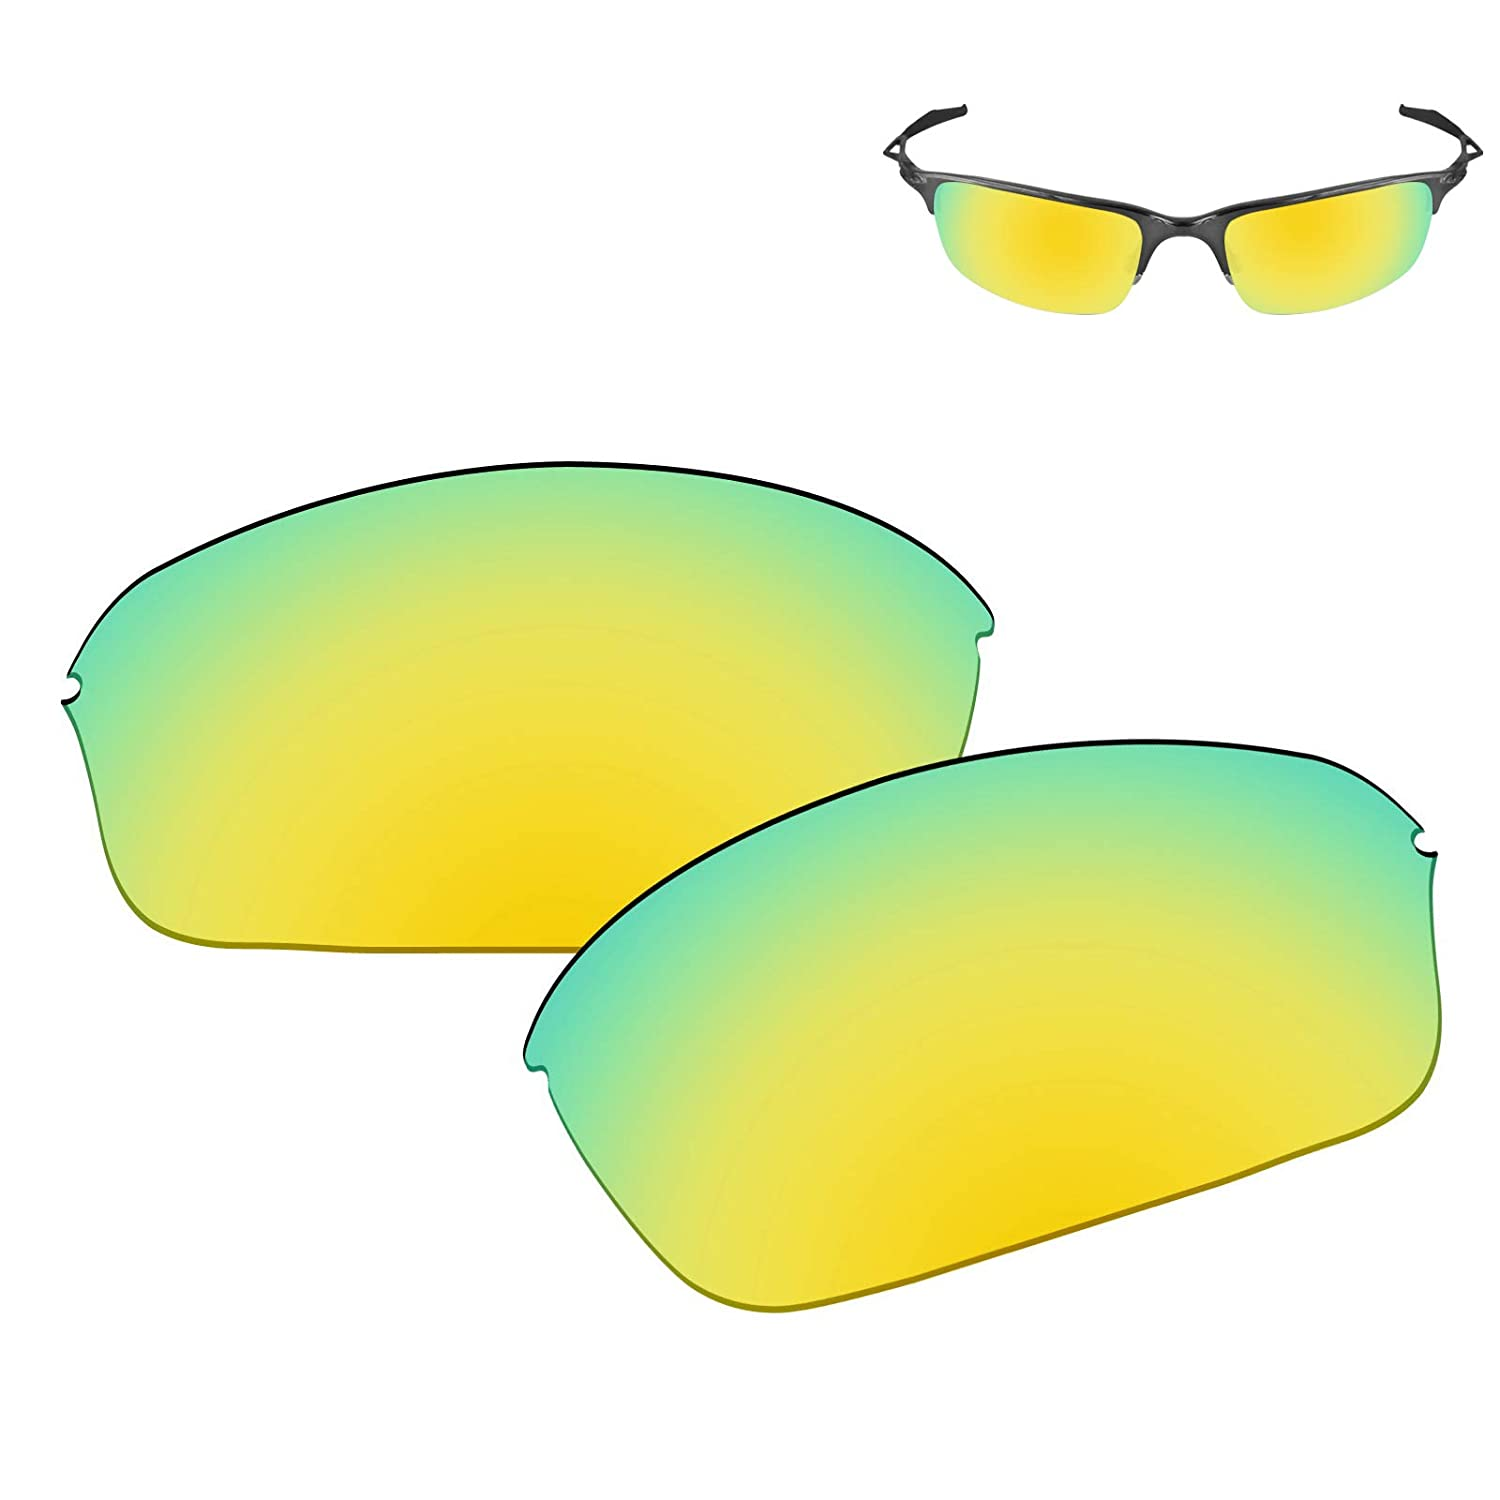 afa7bad898e Amazon.com  Galvanic Replacement Lenses for Oakley Half Wire 2.0 Sunglasses  - 24k Polarized  Clothing